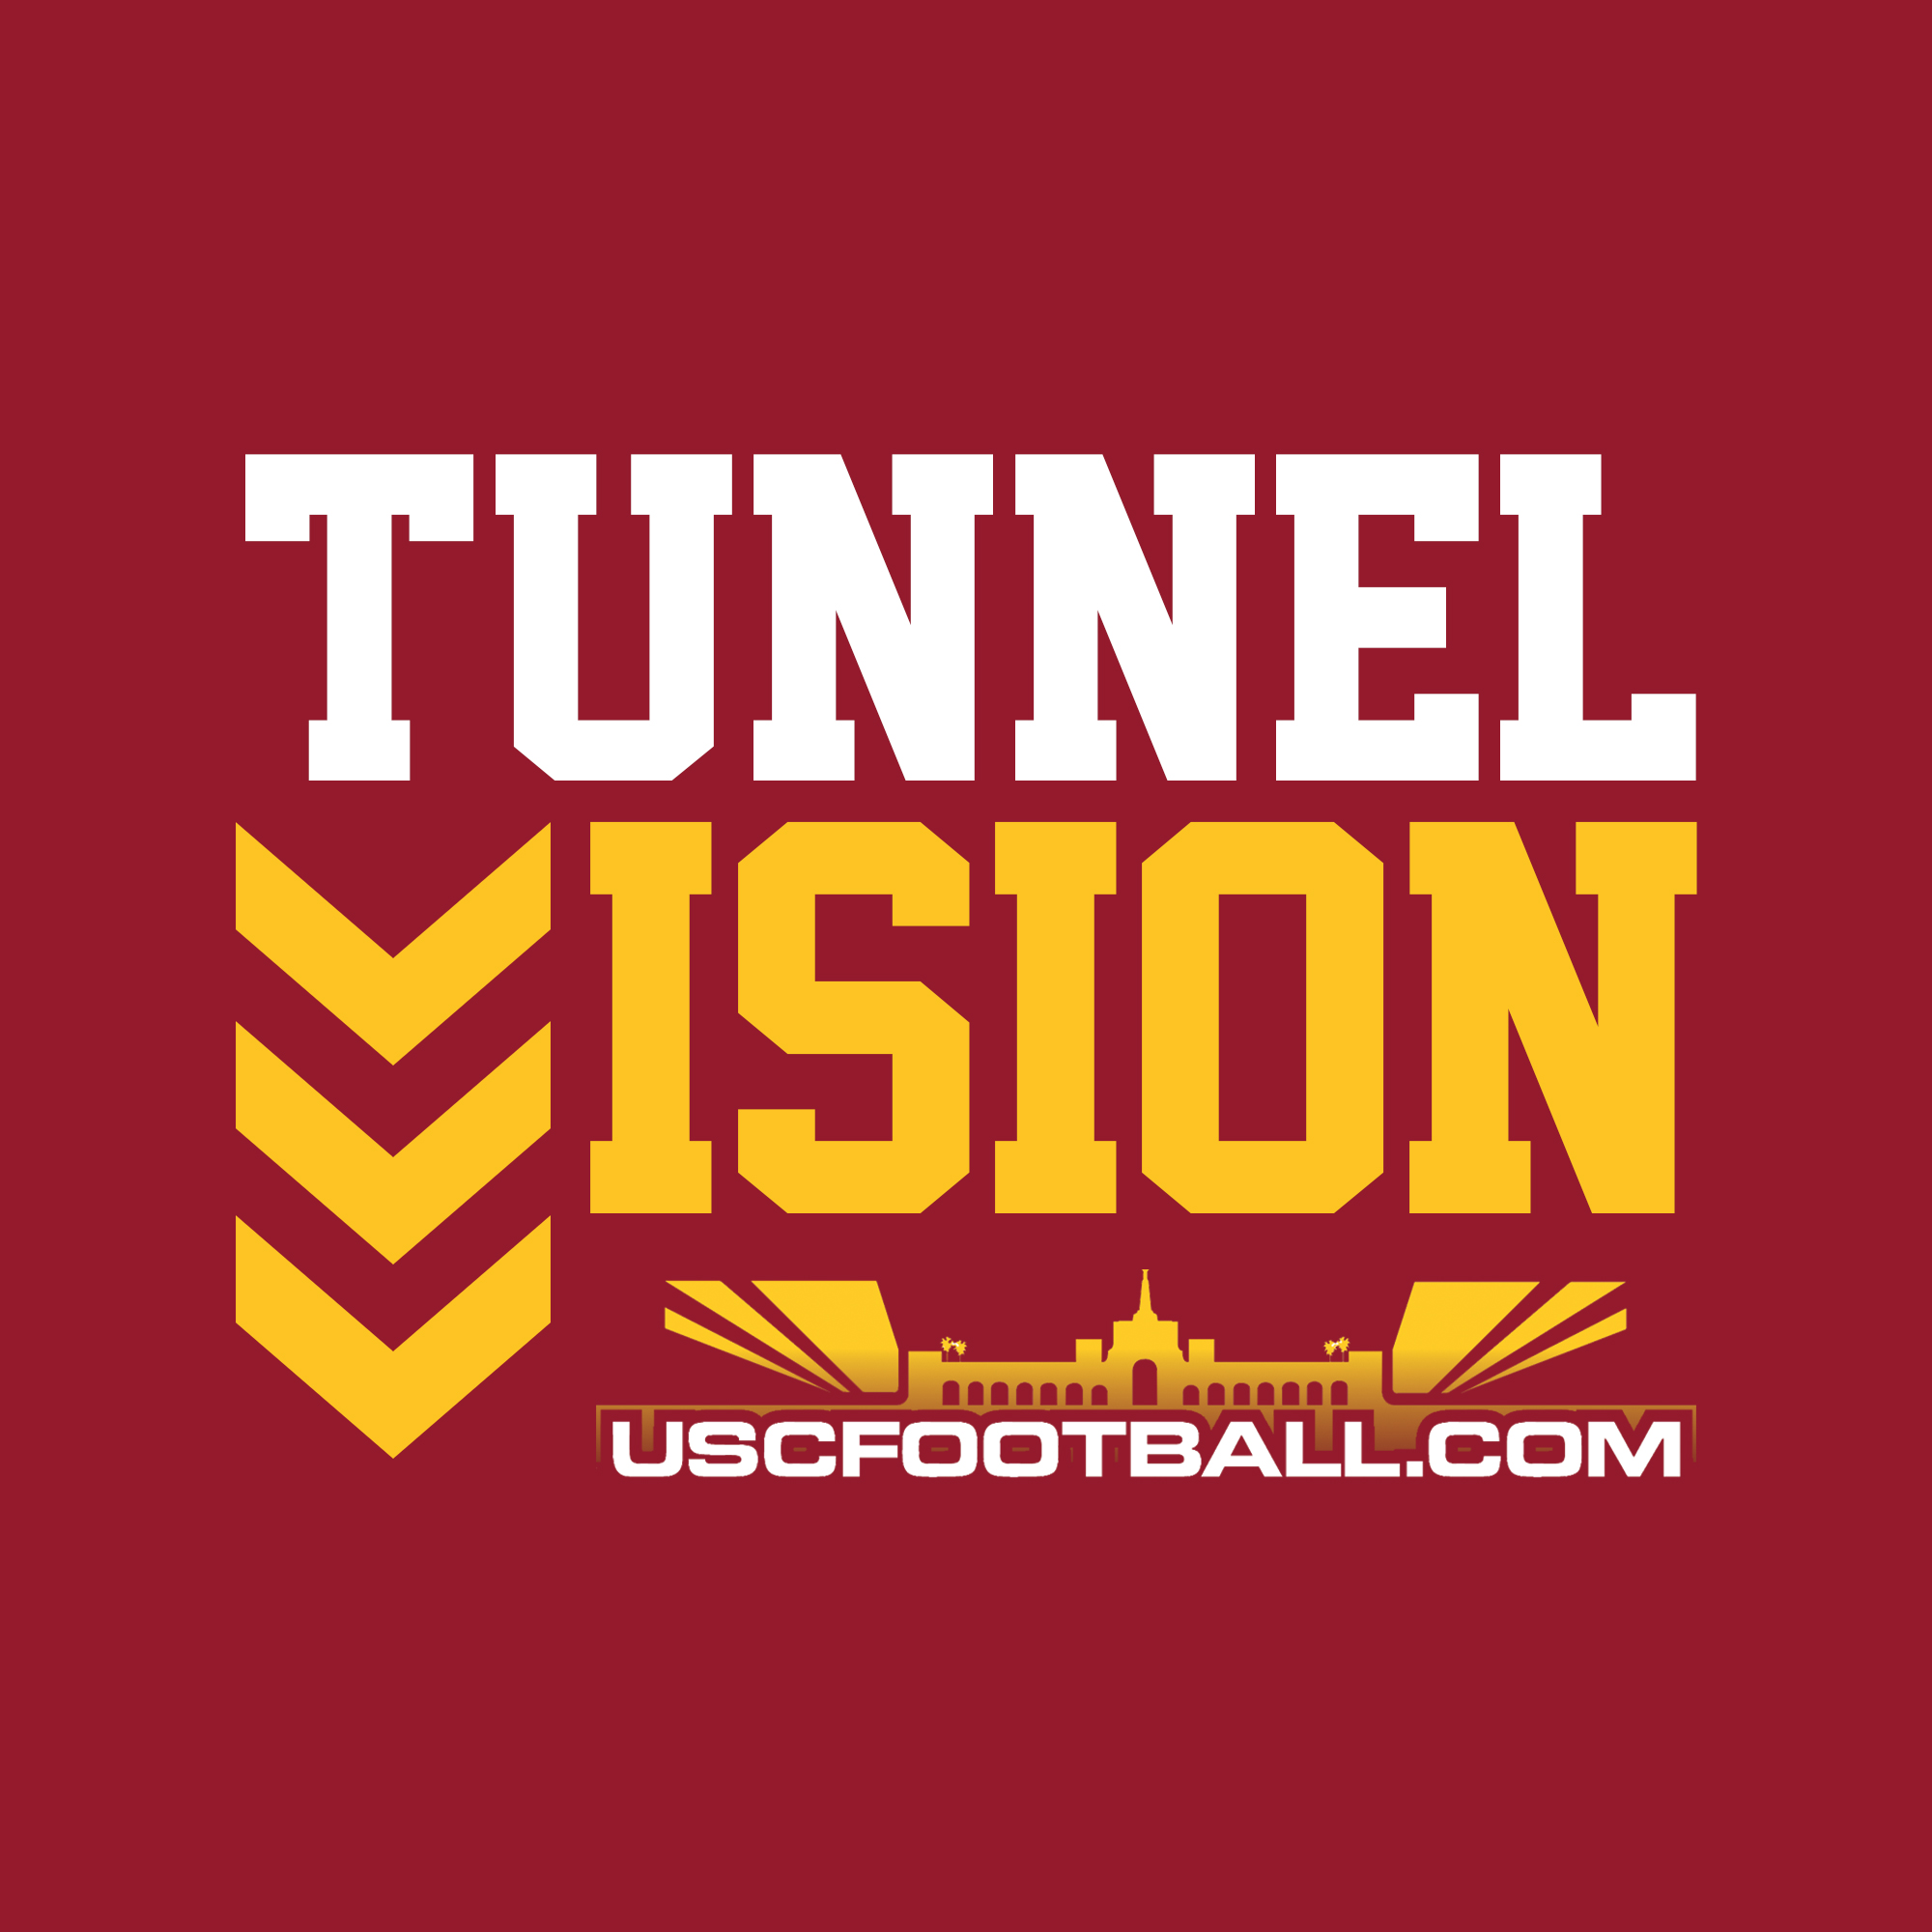 Tunnel Vision - Trojans get trounced by the Ducks